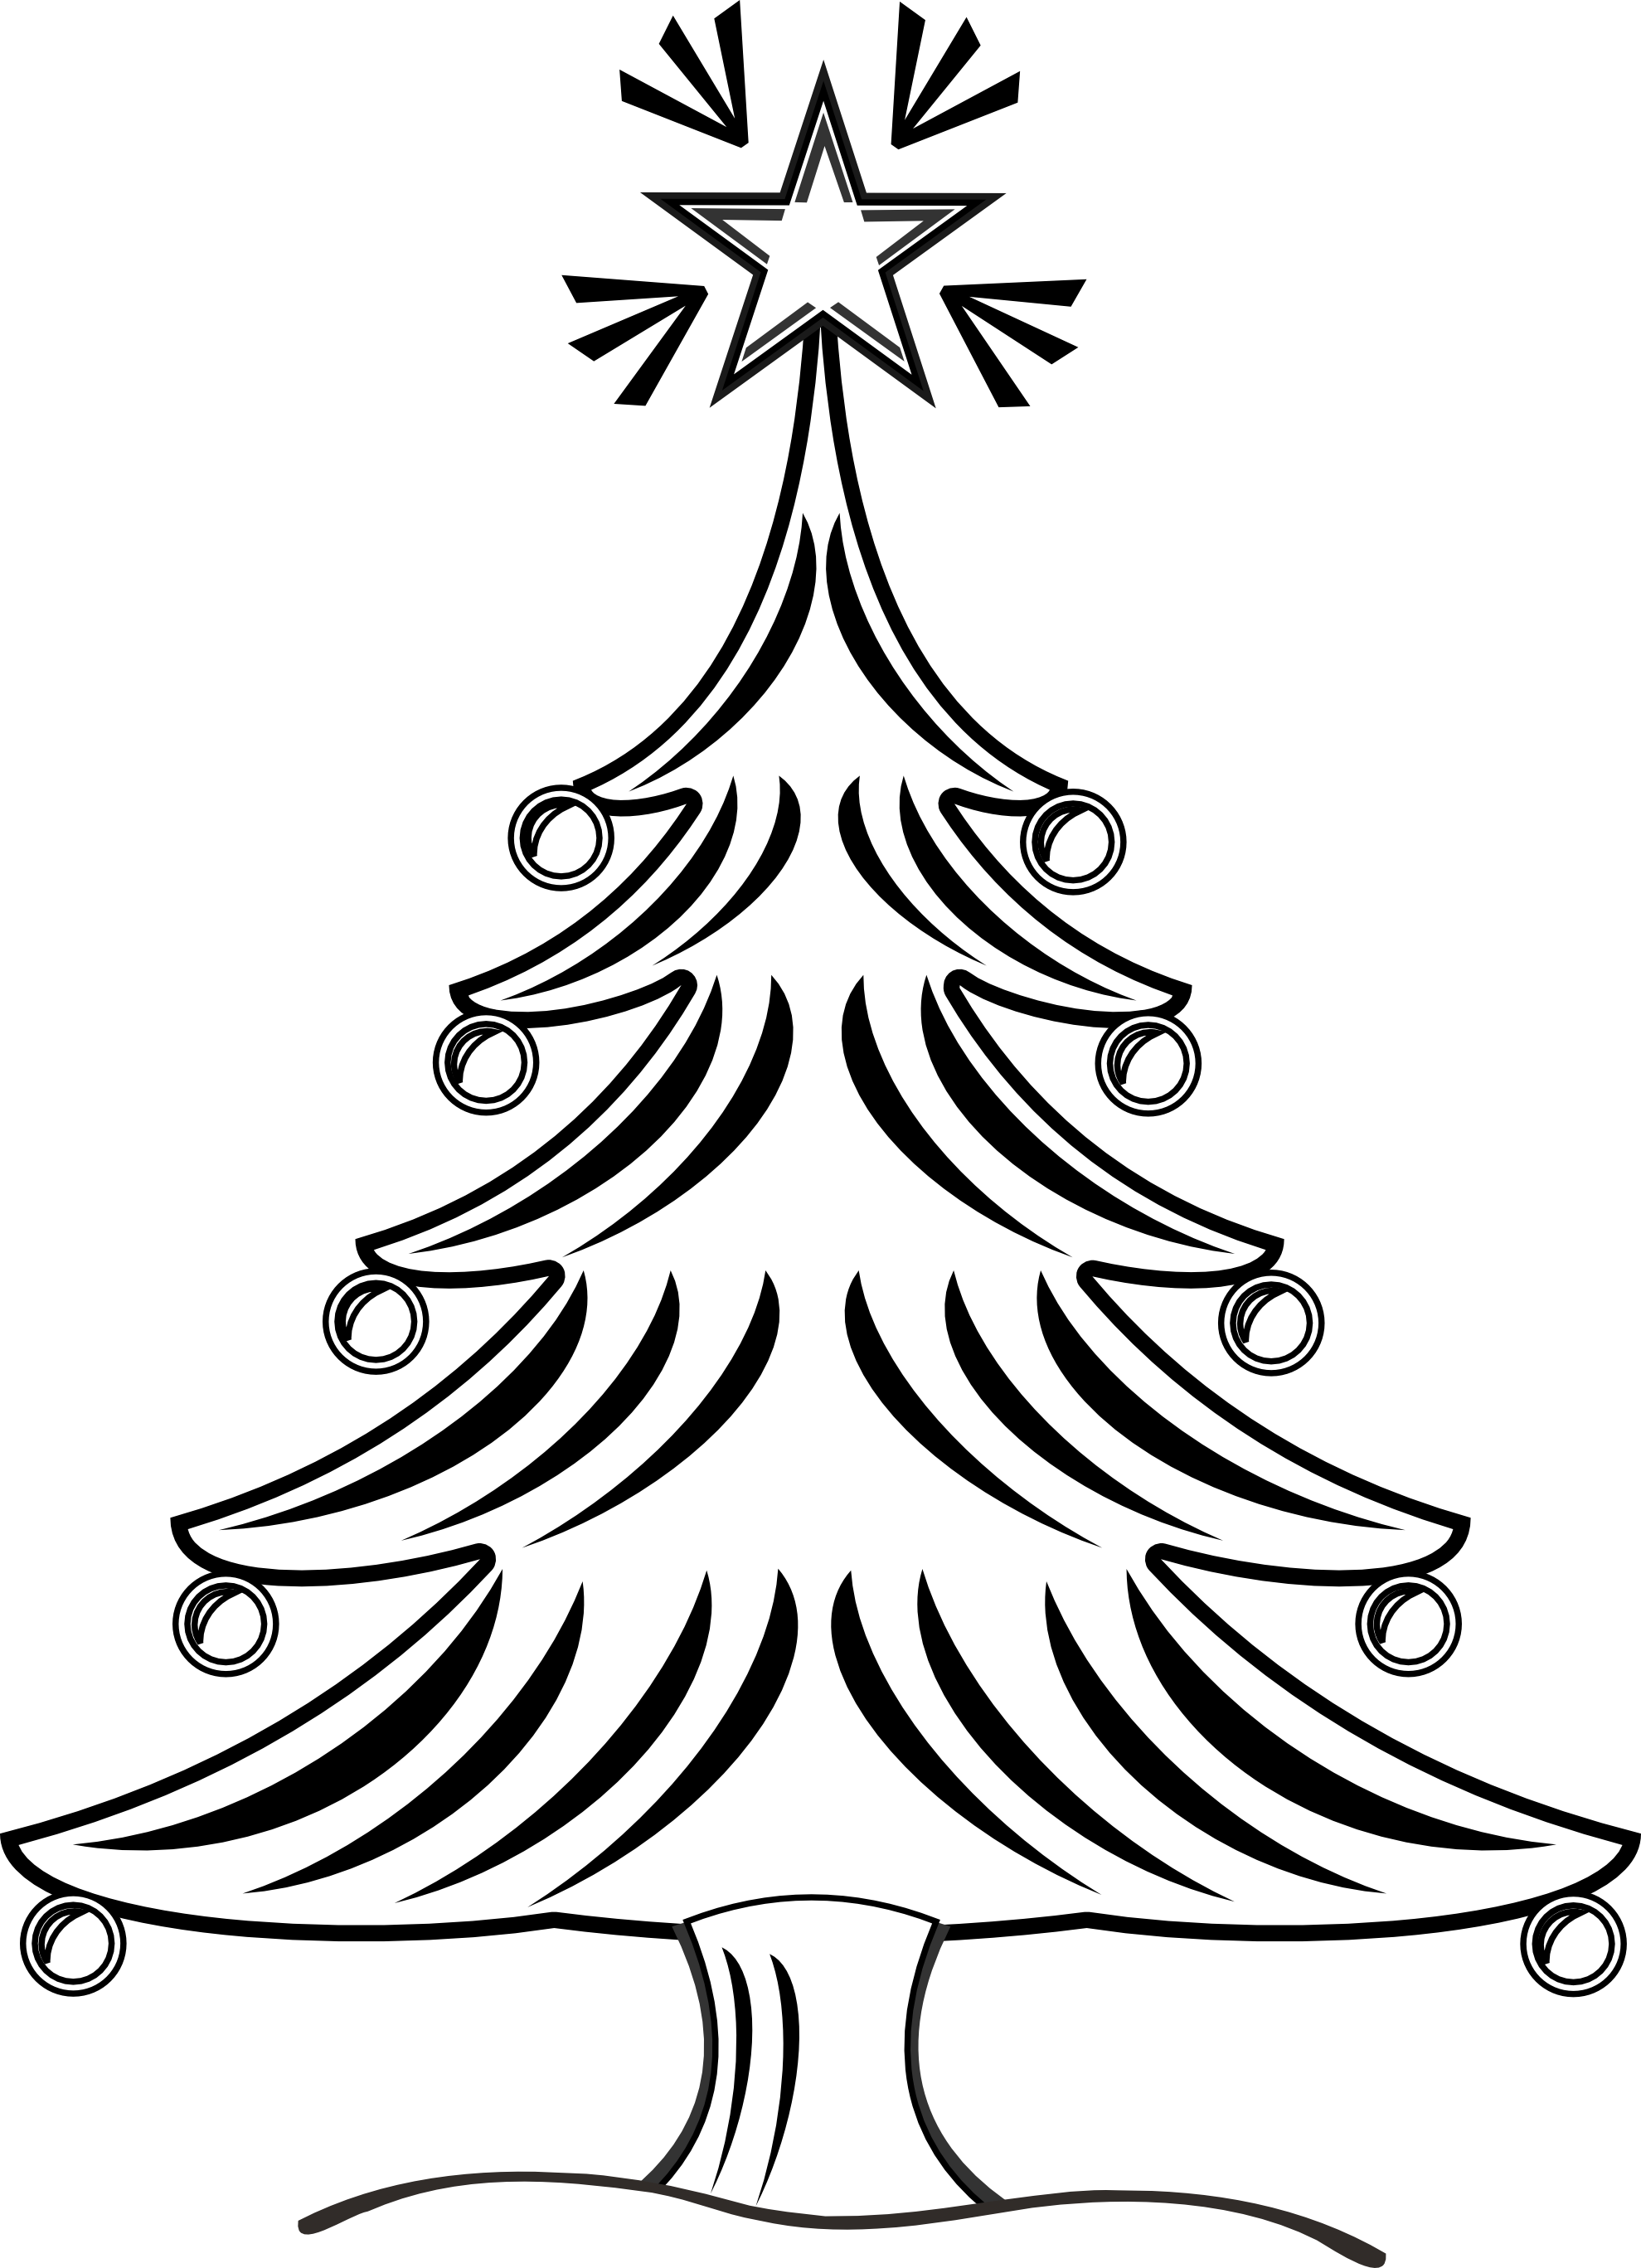 Merry christmas clipart black and white banner royalty free download Christmas Images Black And White | fishwolfeboro banner royalty free download